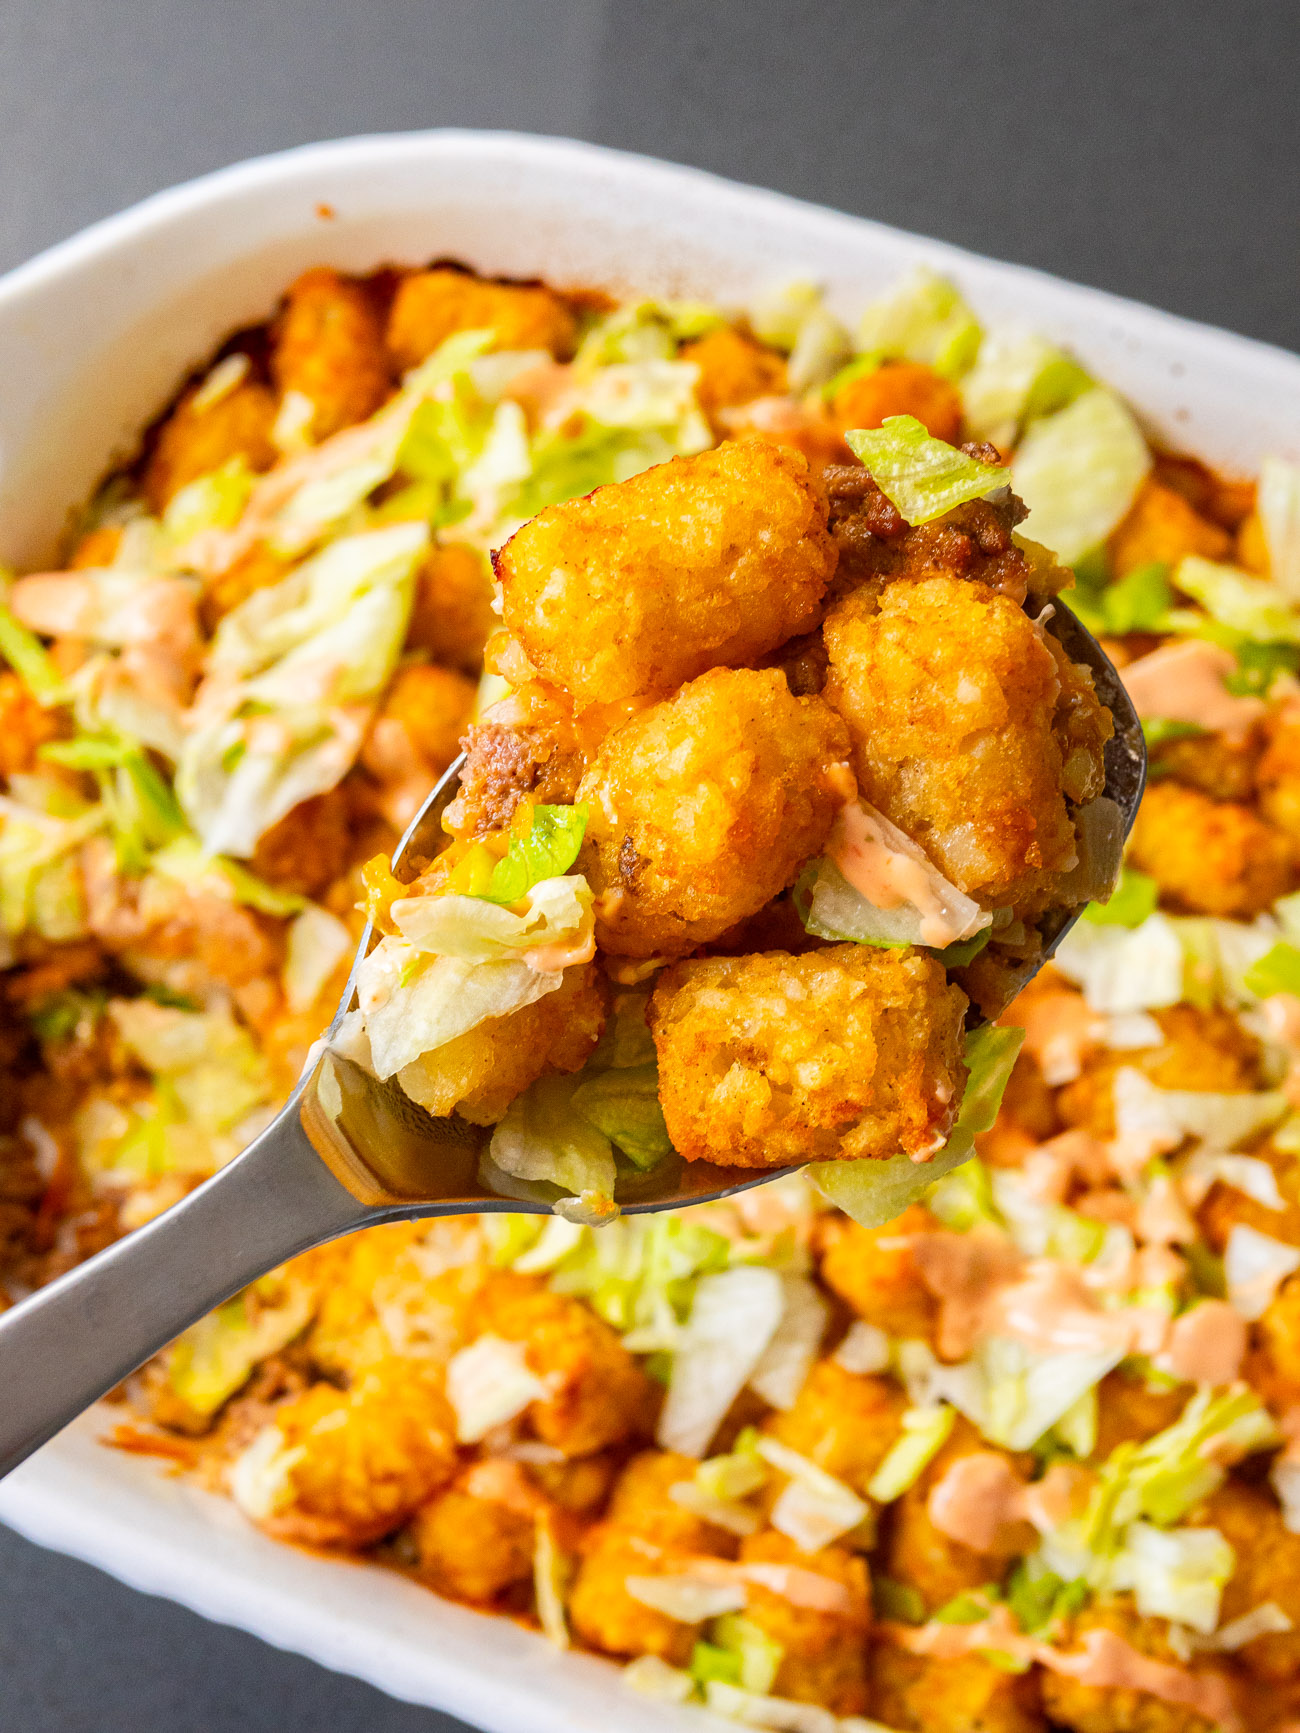 Top down view of a big scoop of tater tot casserole.